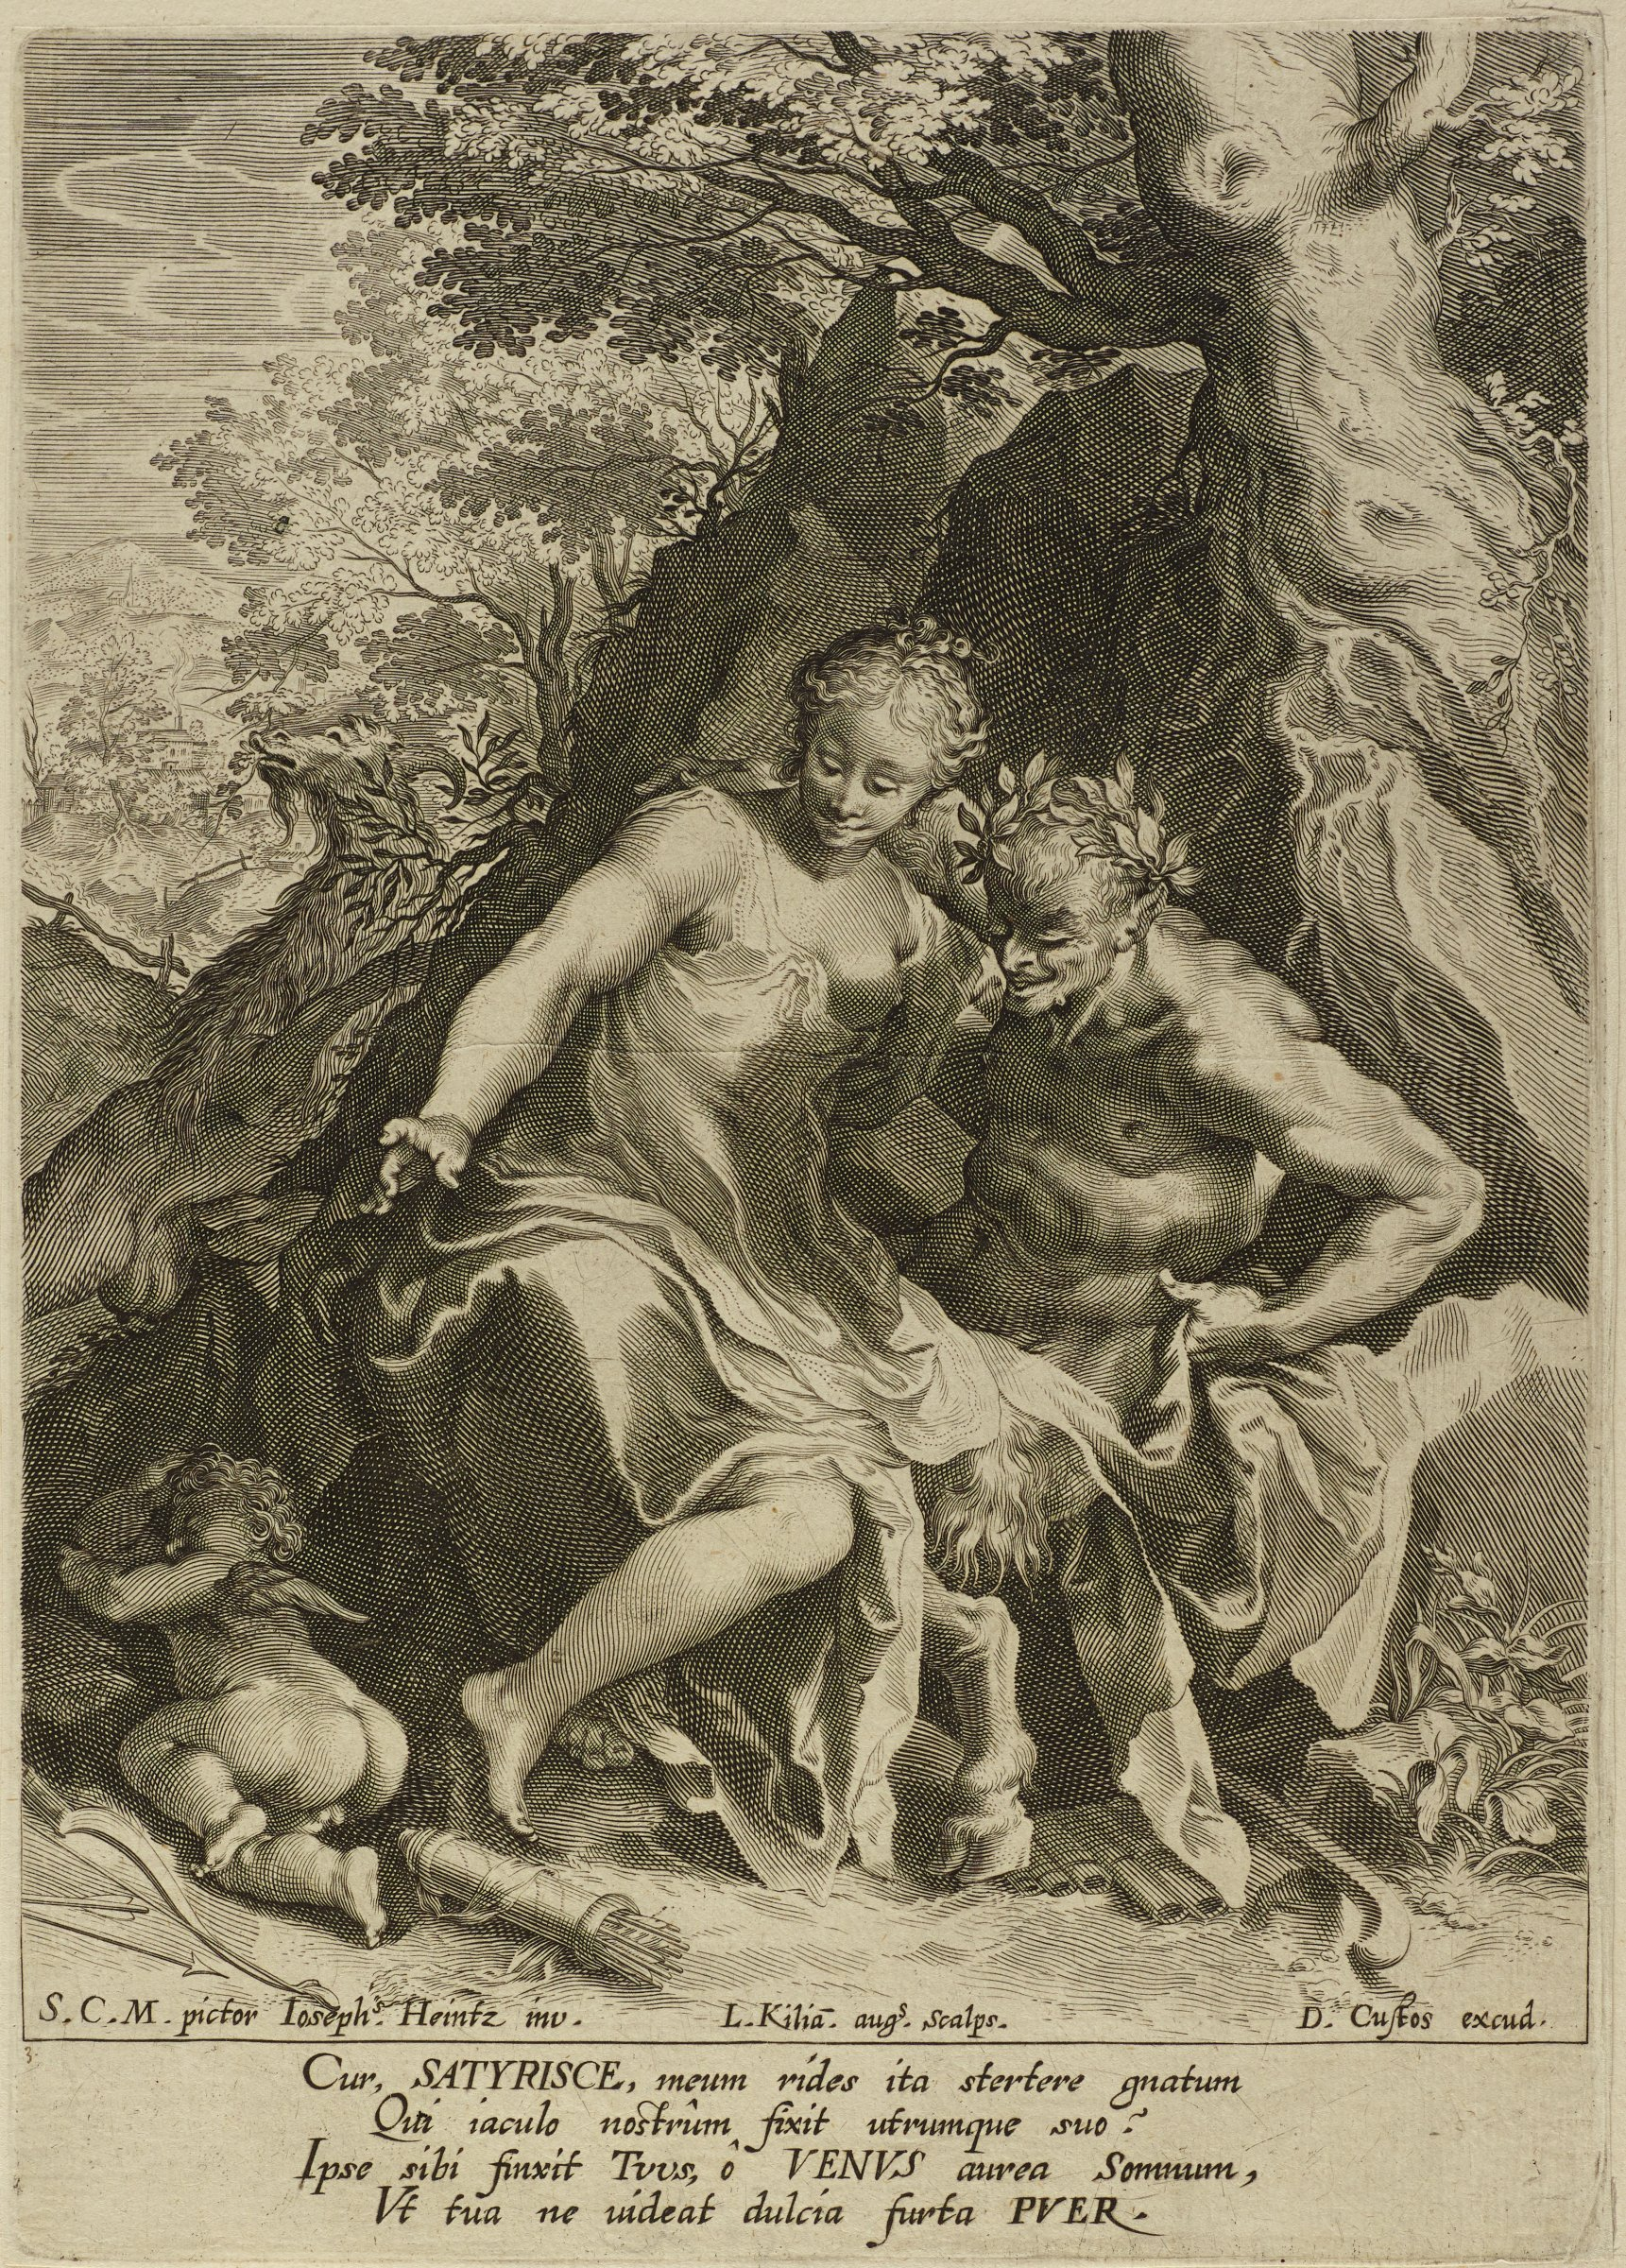 A nymph sits on the knees of a satyr under a tree. Cupid sleeps on the left as the nymph and satyr look down at him.